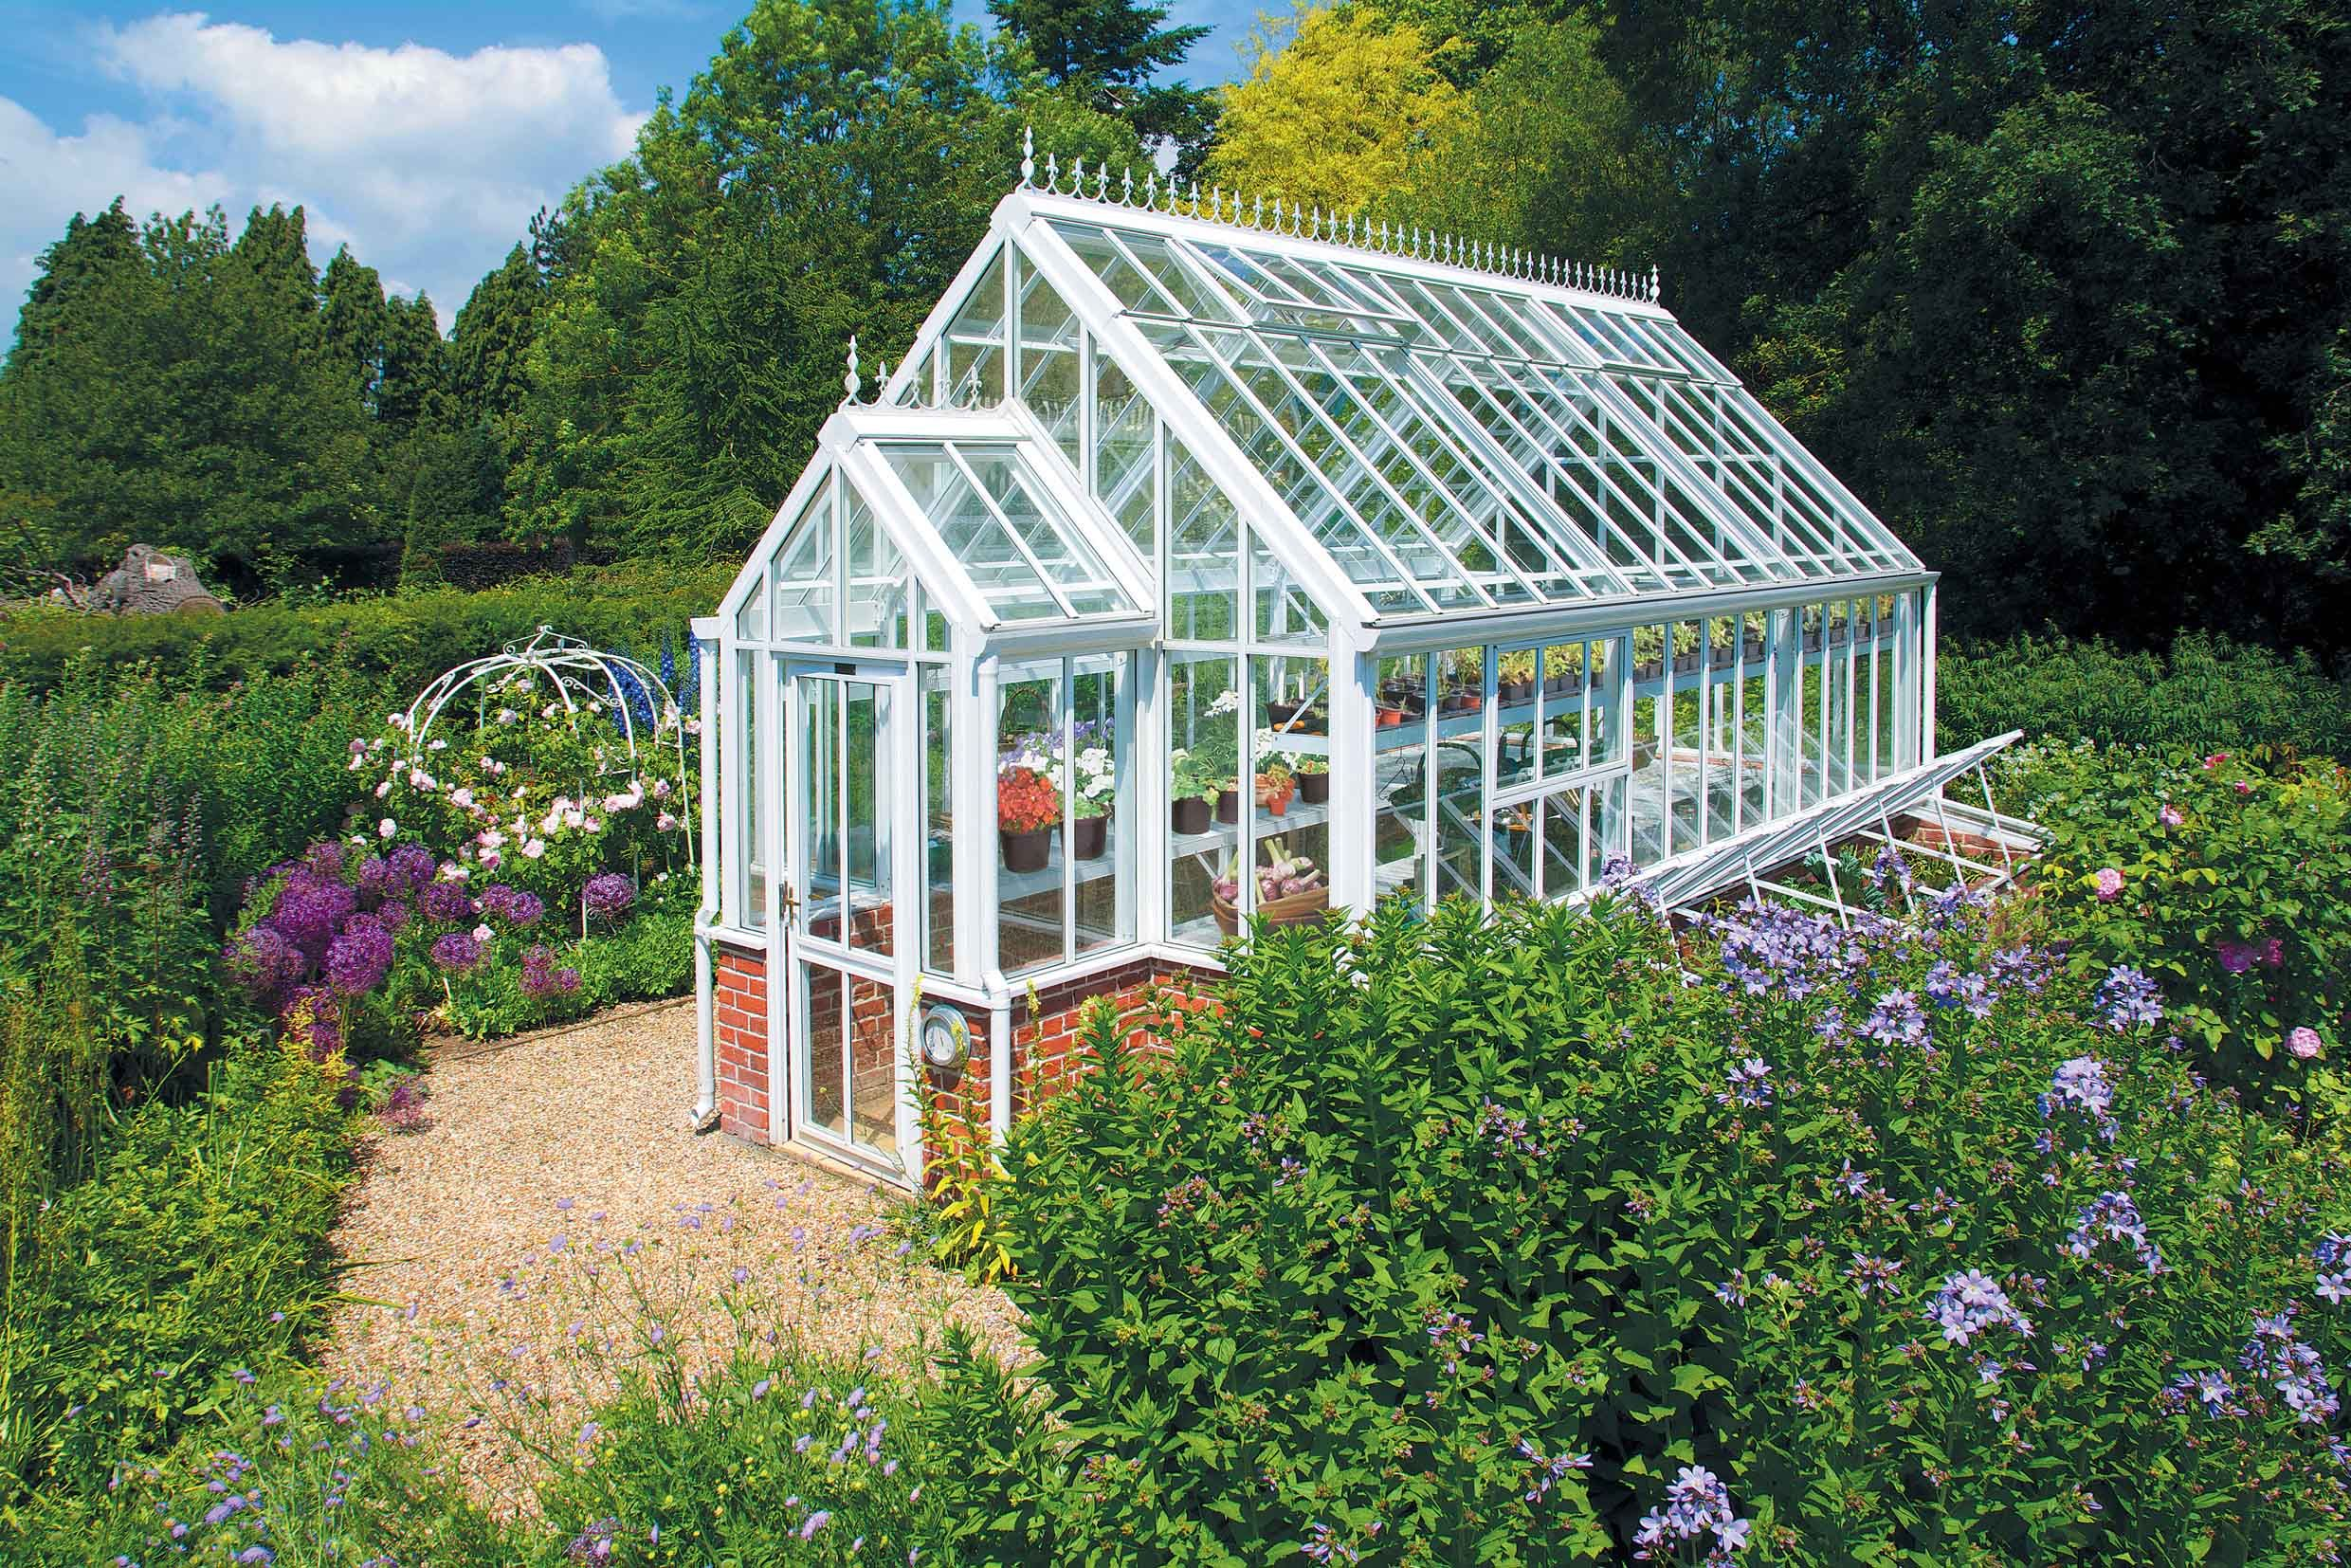 Bespoke Glasshouse with porch in one end